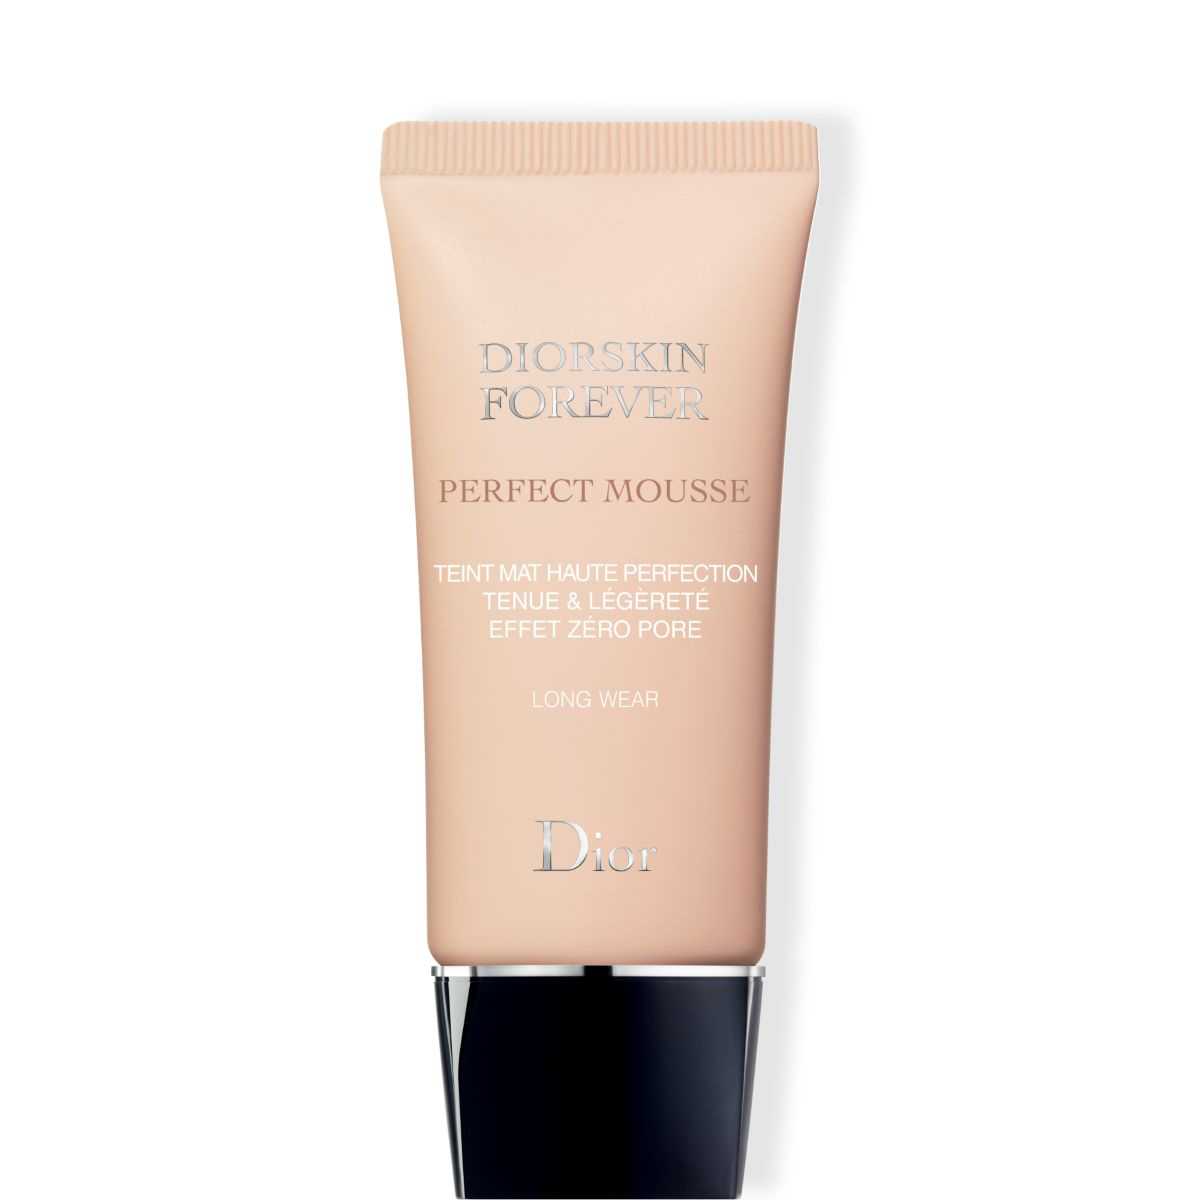 Dior - Diorskin Forever Perfect Mousse - Teint Mat Haute Perfection